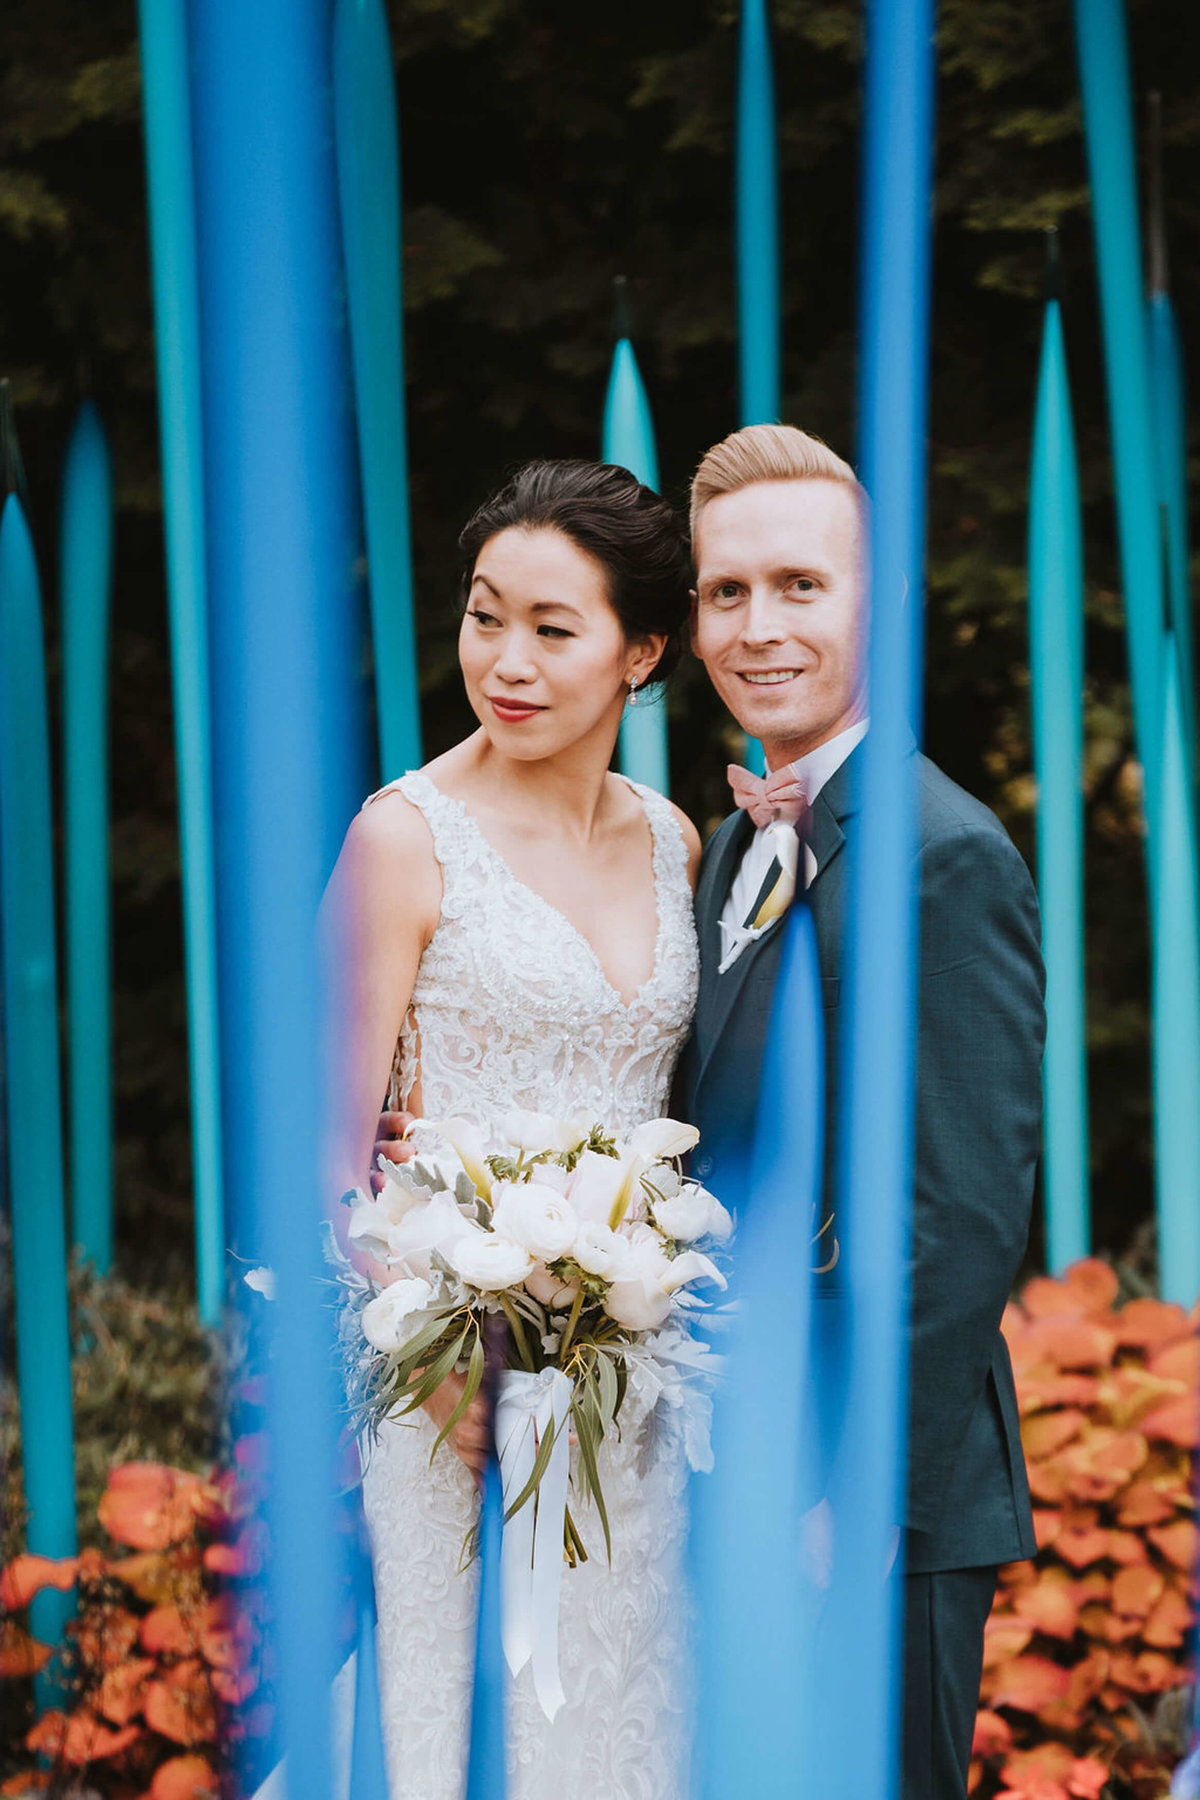 chihuly-garden-and-glass-wedding-sharel-eric-by-Adina-Preston-Photography-2019-178